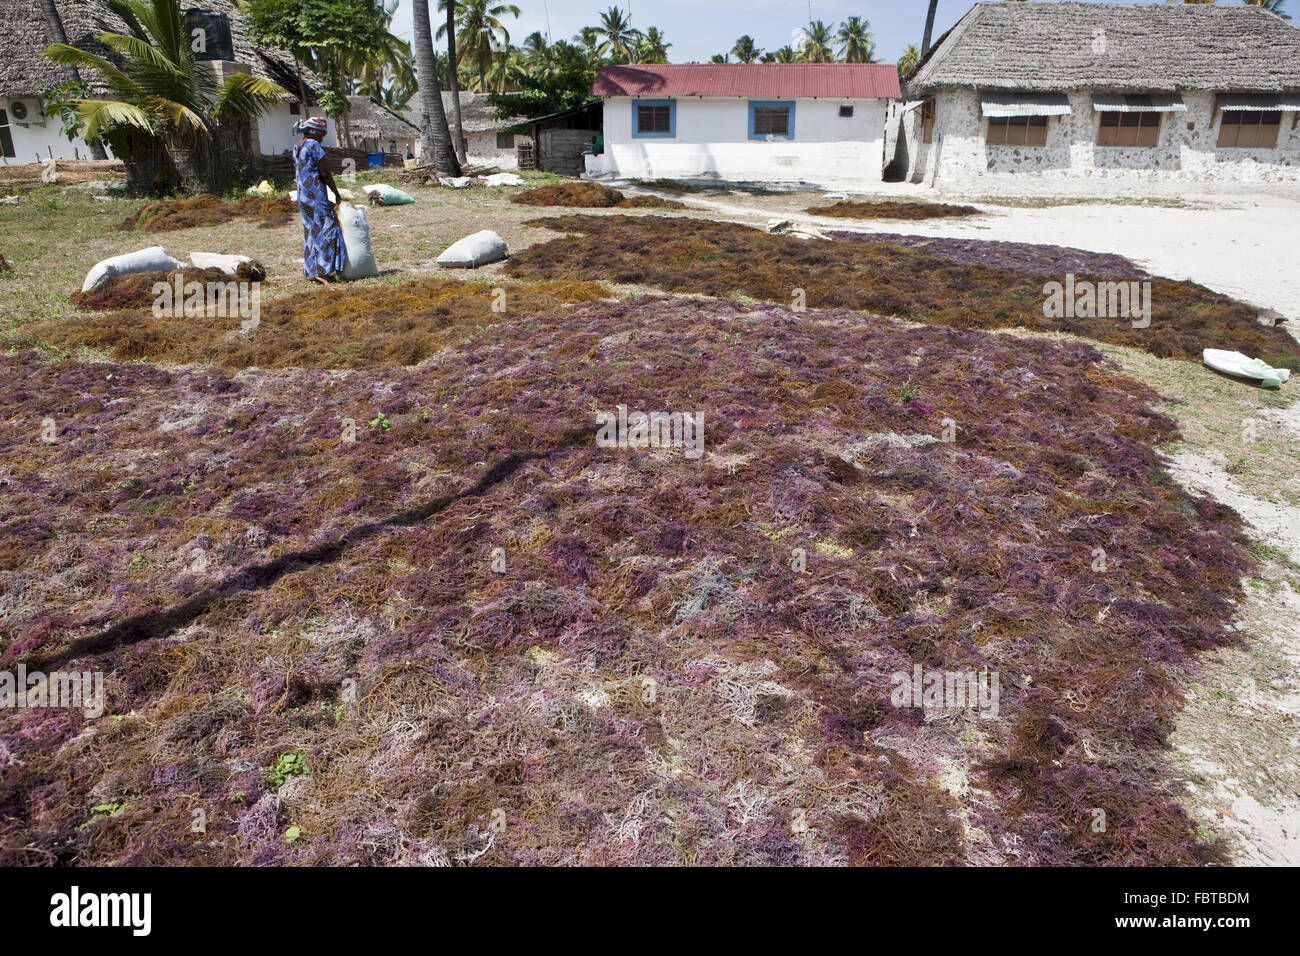 A woman worked to dry seaweed designed - Stock Image